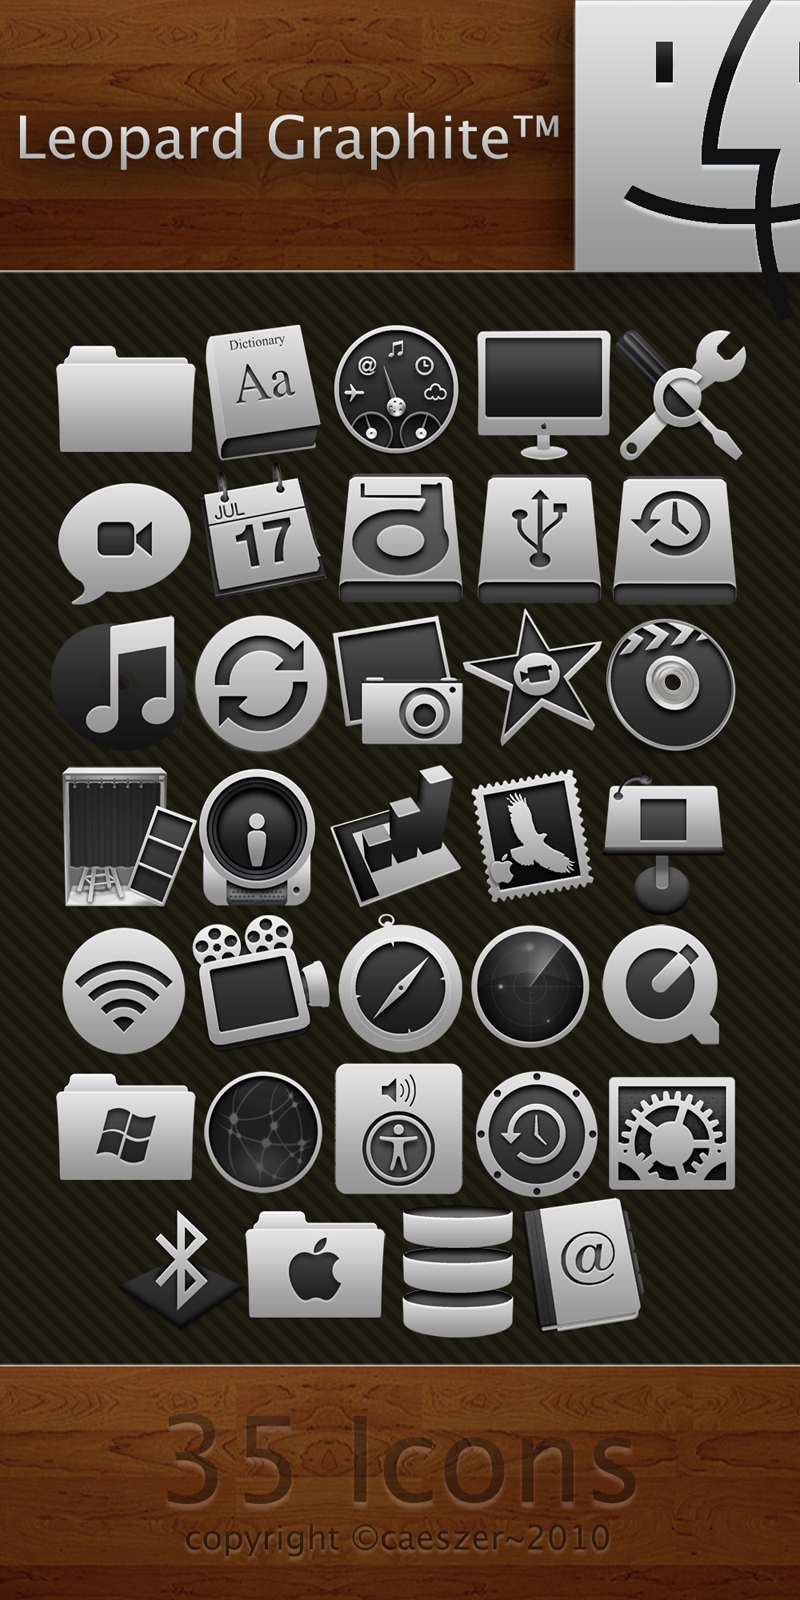 Leopard Graphite Icon Pack